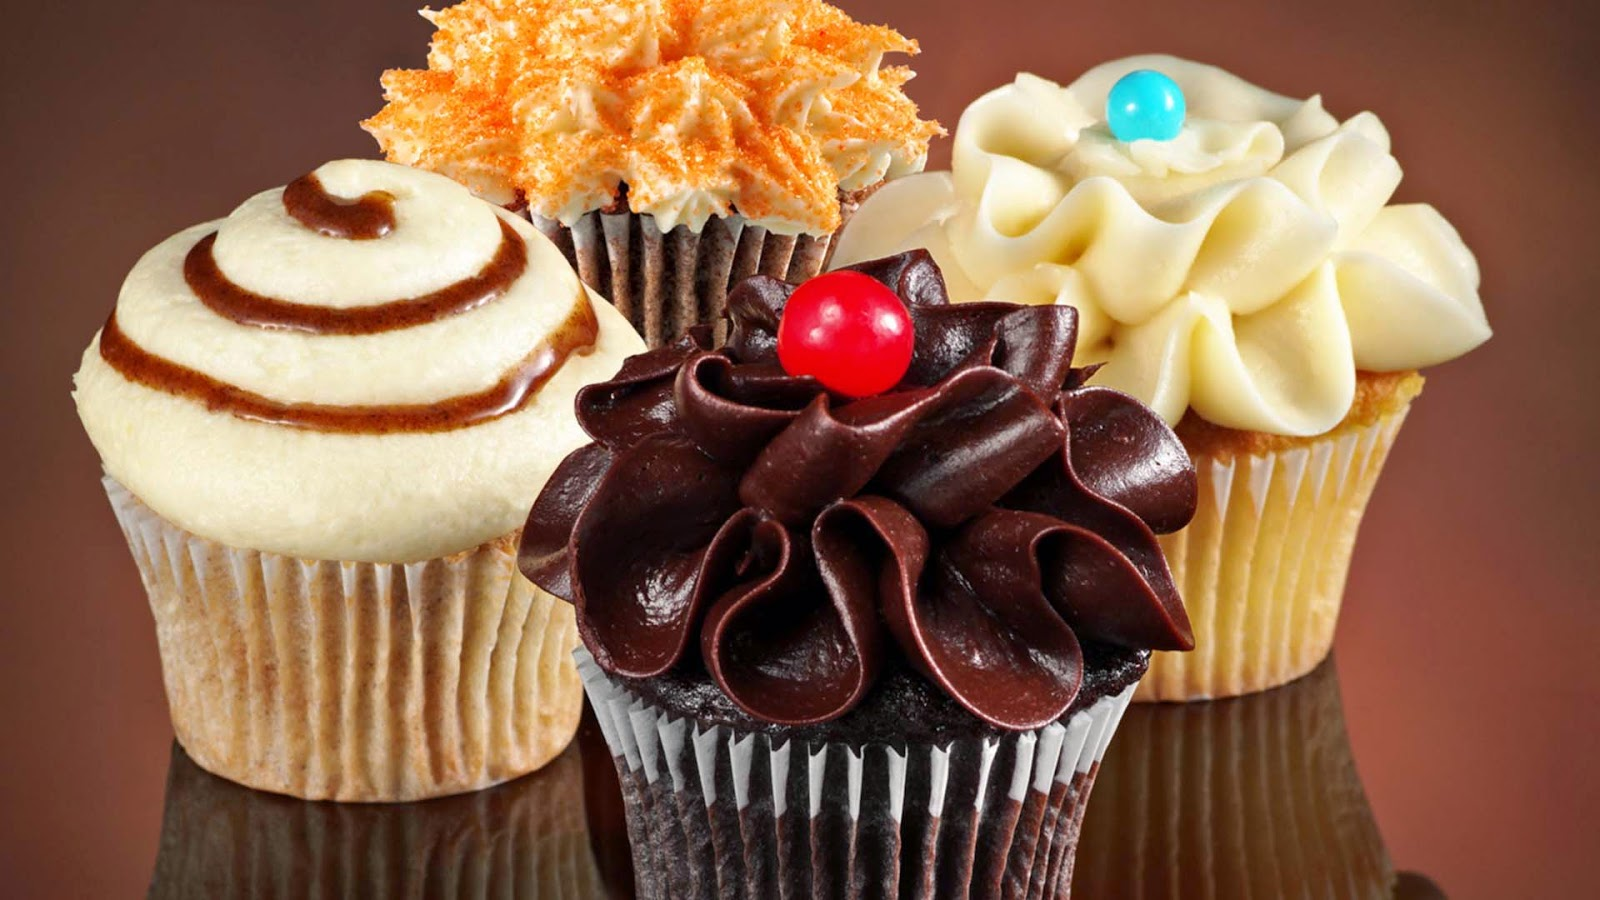 cupcakes-yummy-cake-pictures-hd